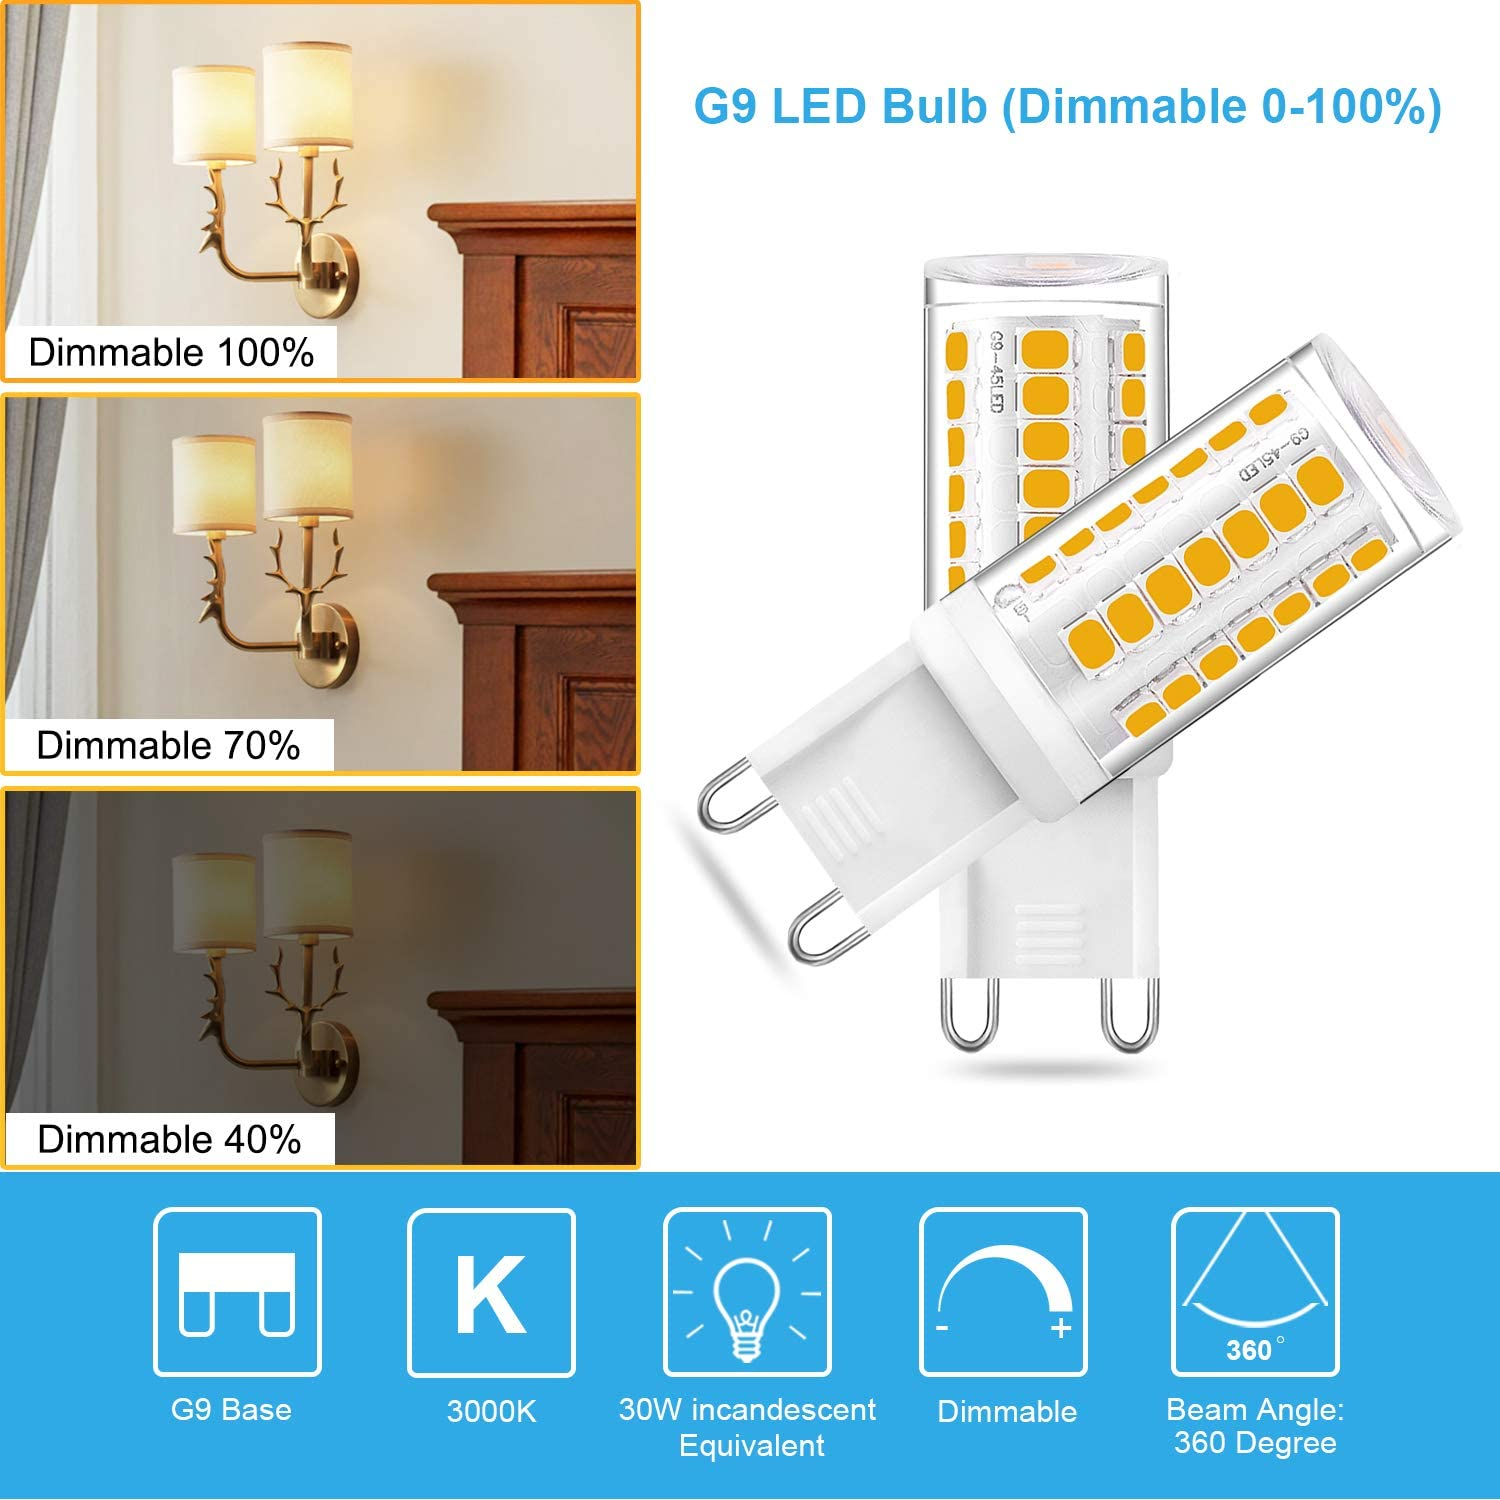 2-Pack G9 3W LED Bulb Dimmable 30W 35W 40W Halogen Bulb Replacement Warm White 3000K AC120V G9 Bi Pin Base Light for Home Lighting